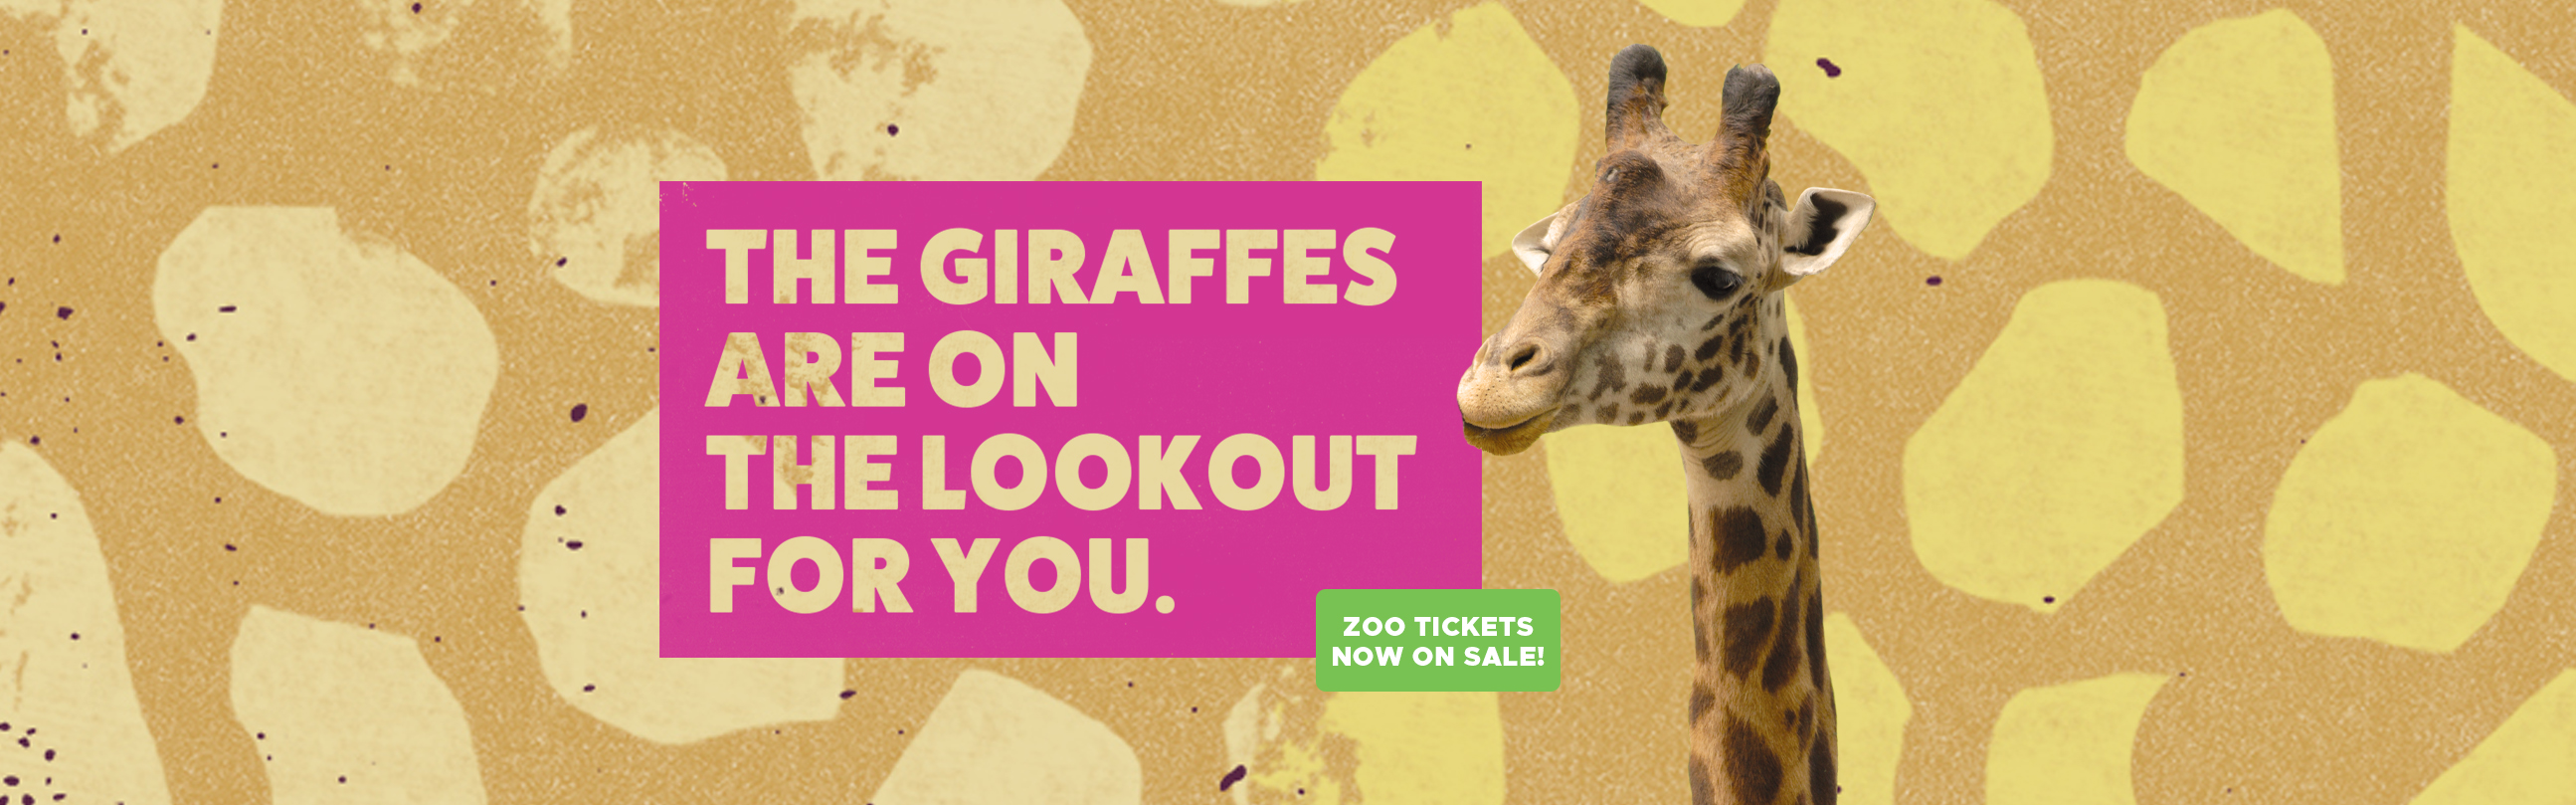 Reopen-giraffe-2490-tickets